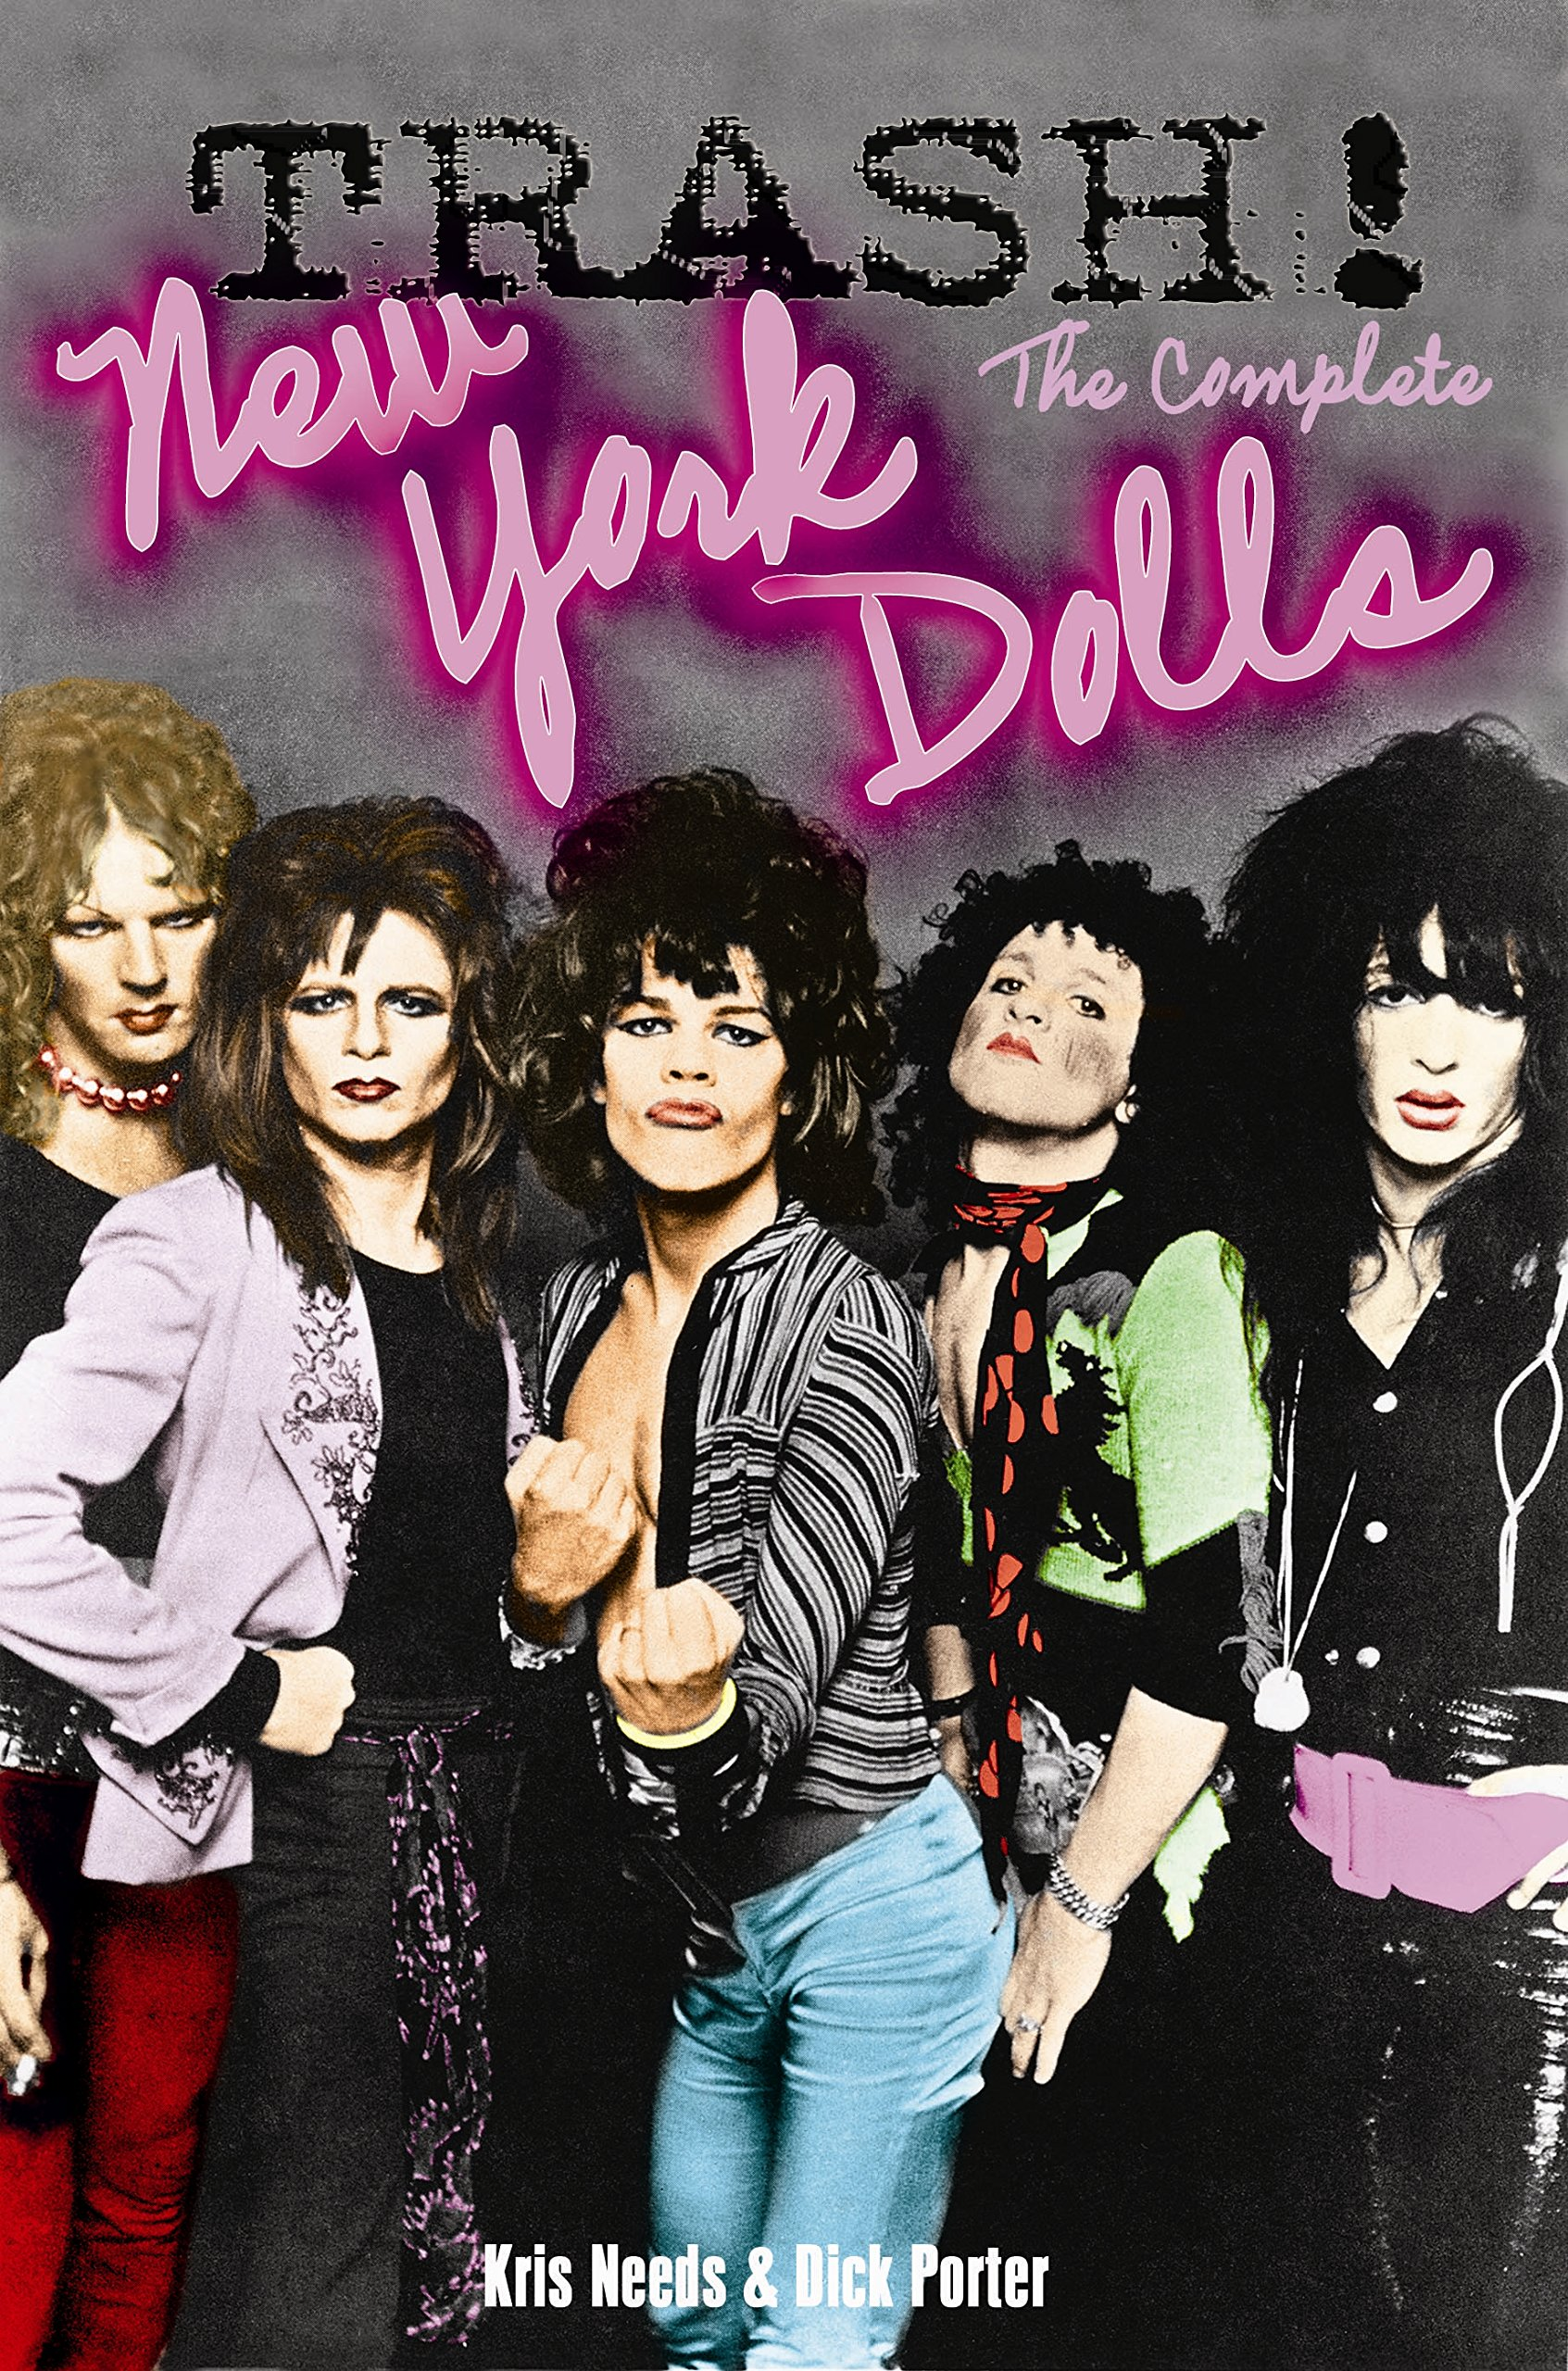 Trash! The Complete New York Dolls PDF